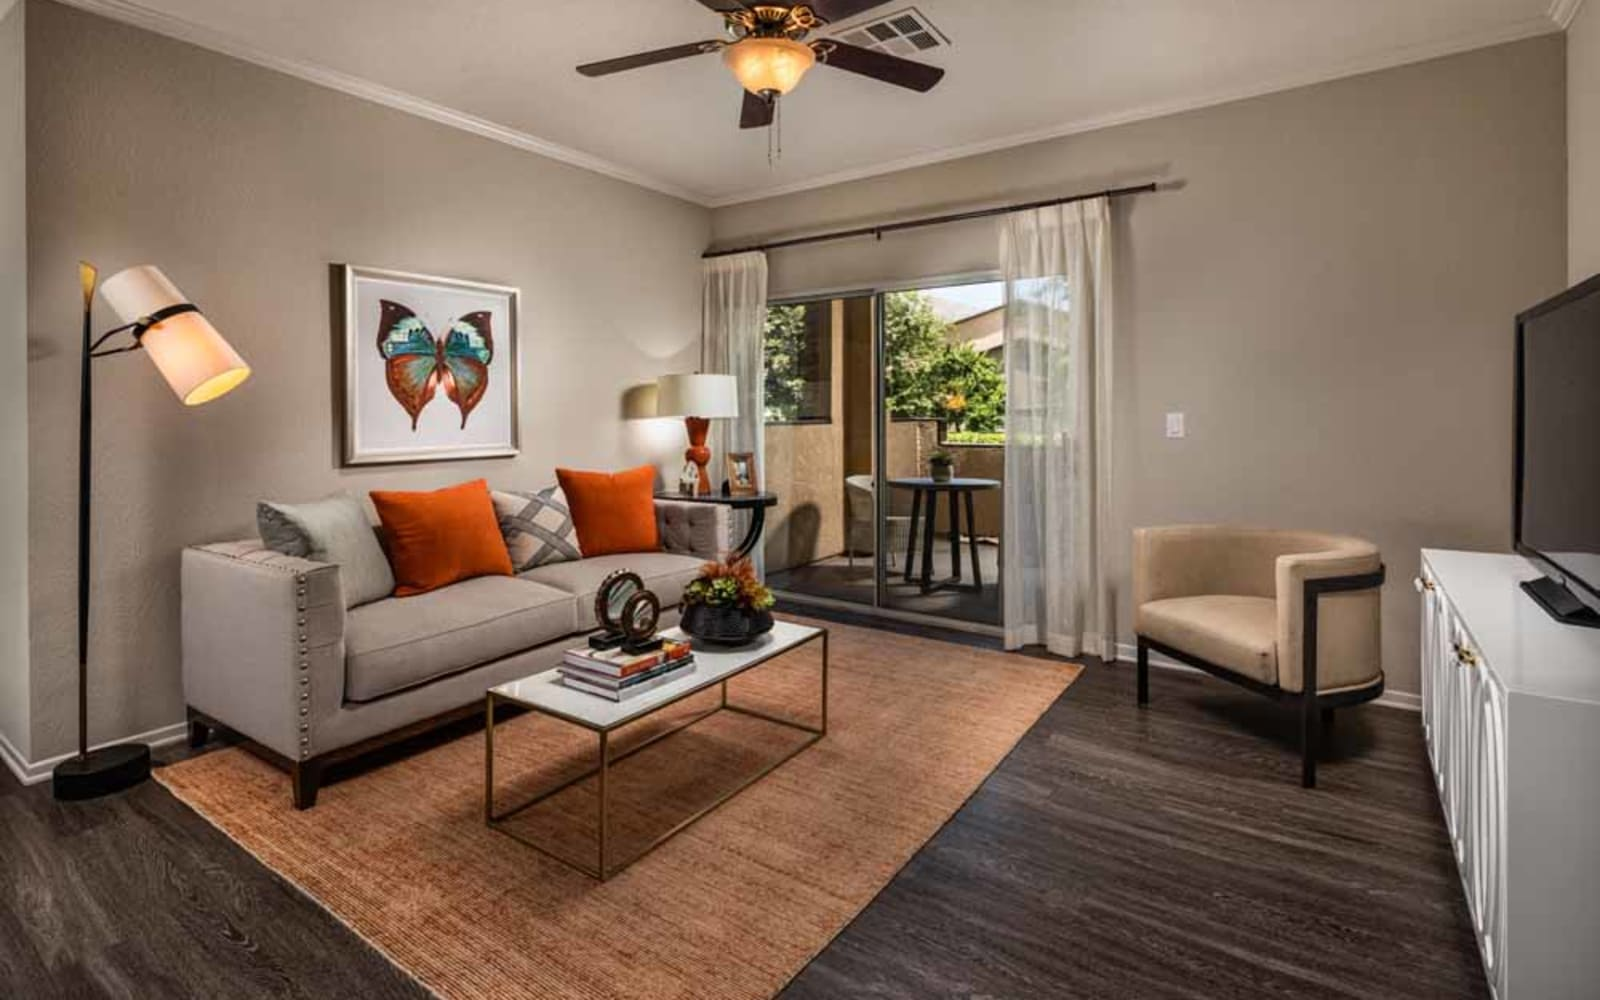 An apartment living room with a ceiling fan at Colonnade at Sycamore Highlands in Riverside, California